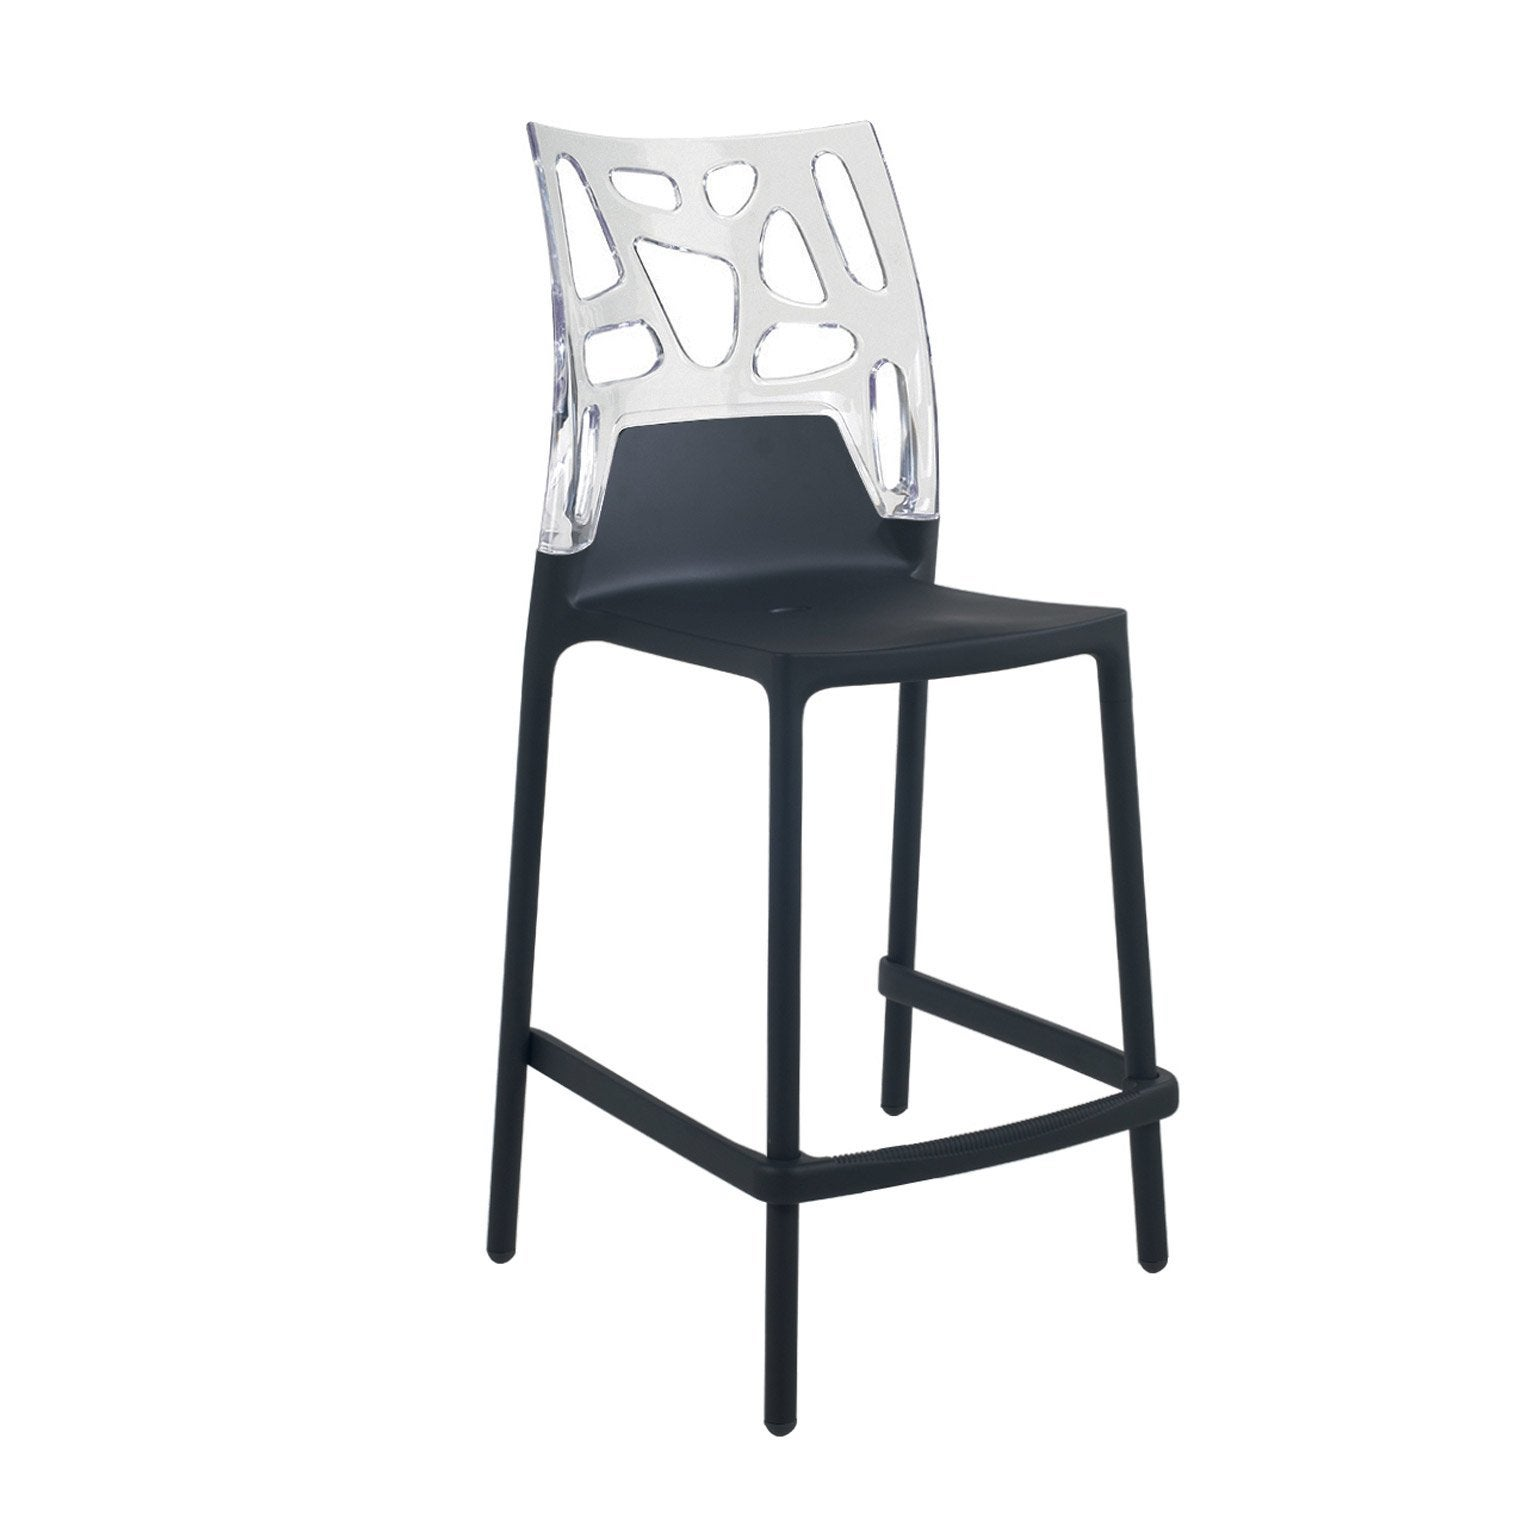 Tabouret de bar design, plastique, transparent, Vickie